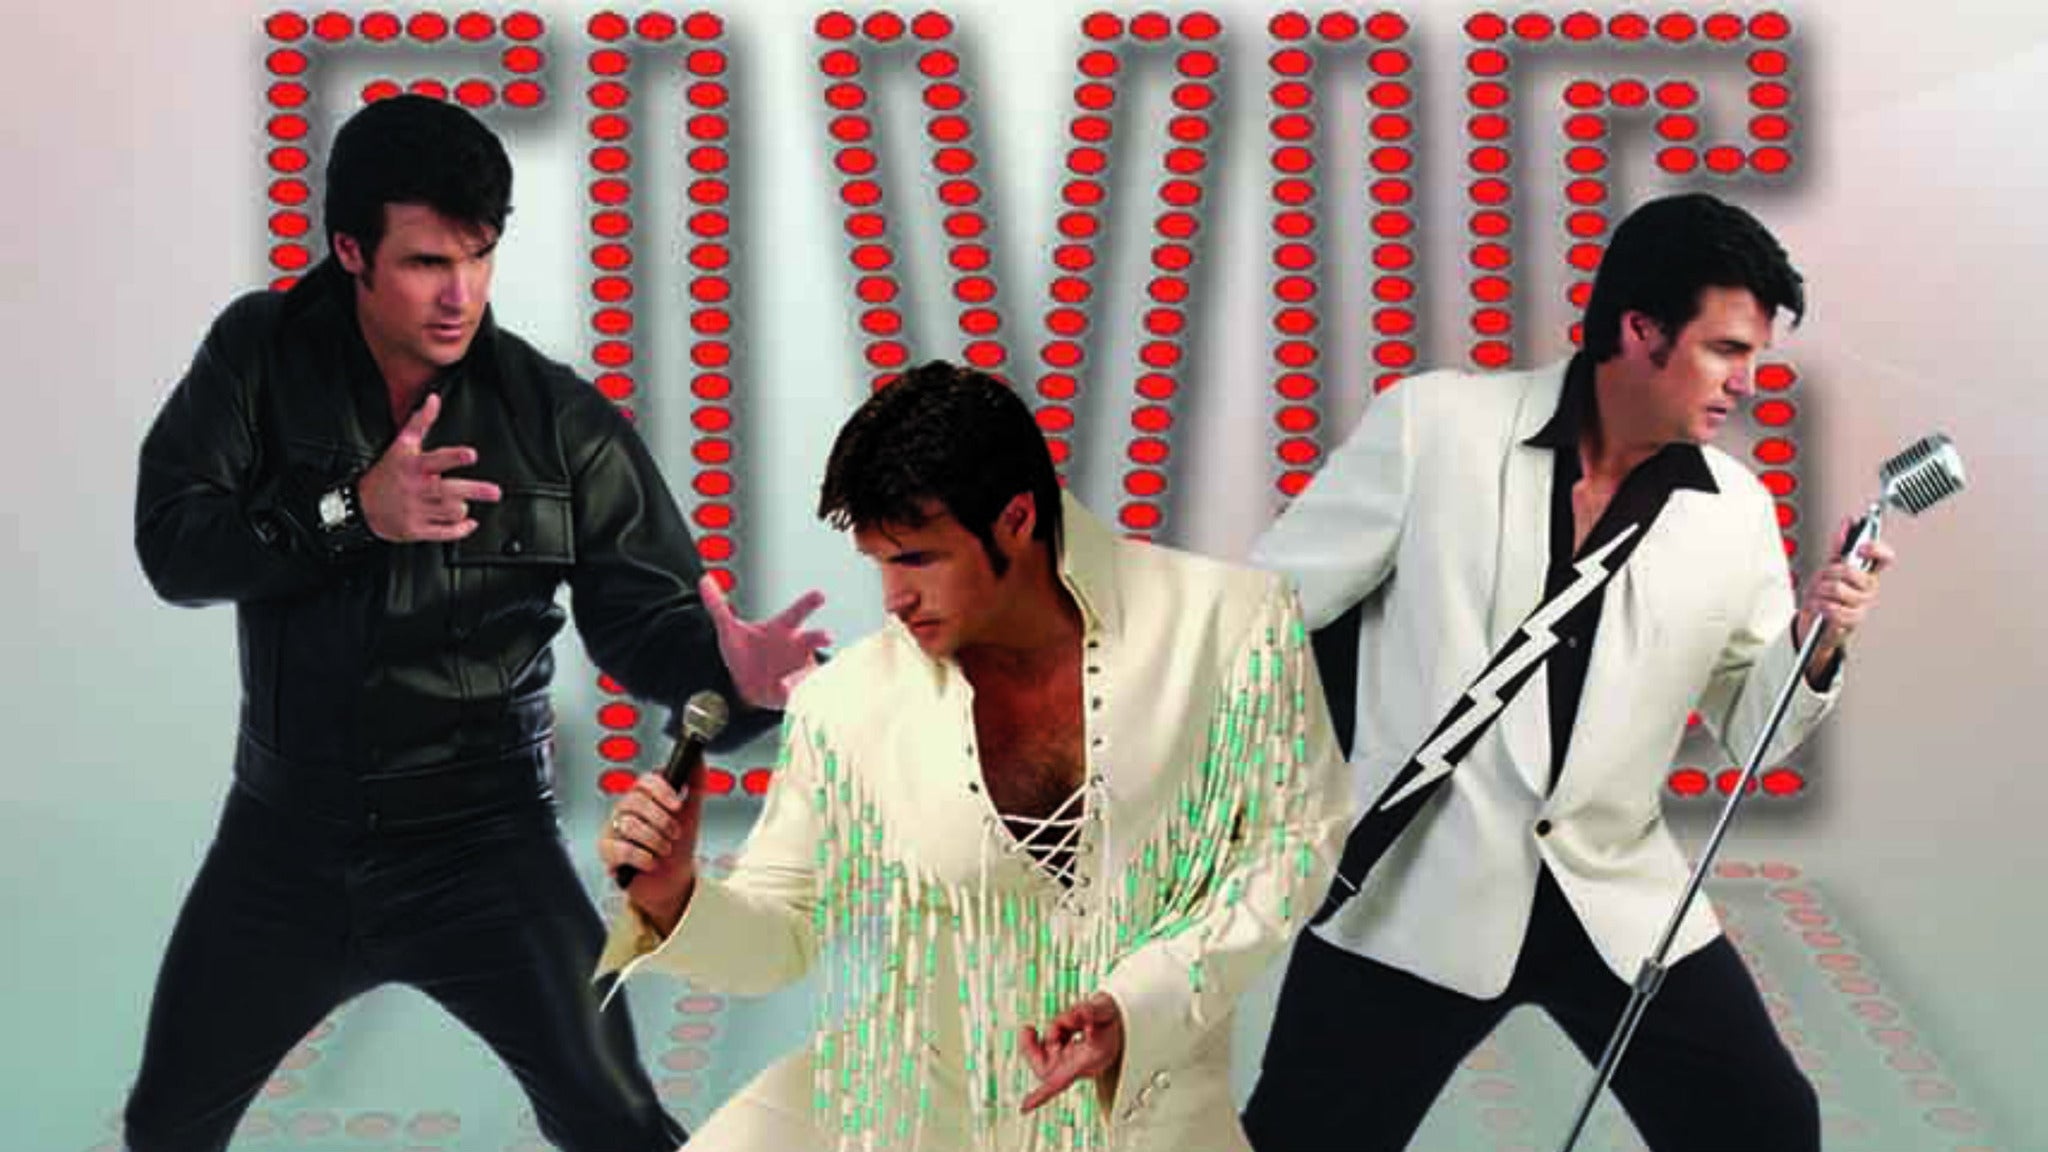 Chris MacDonald's Memories of Elvis